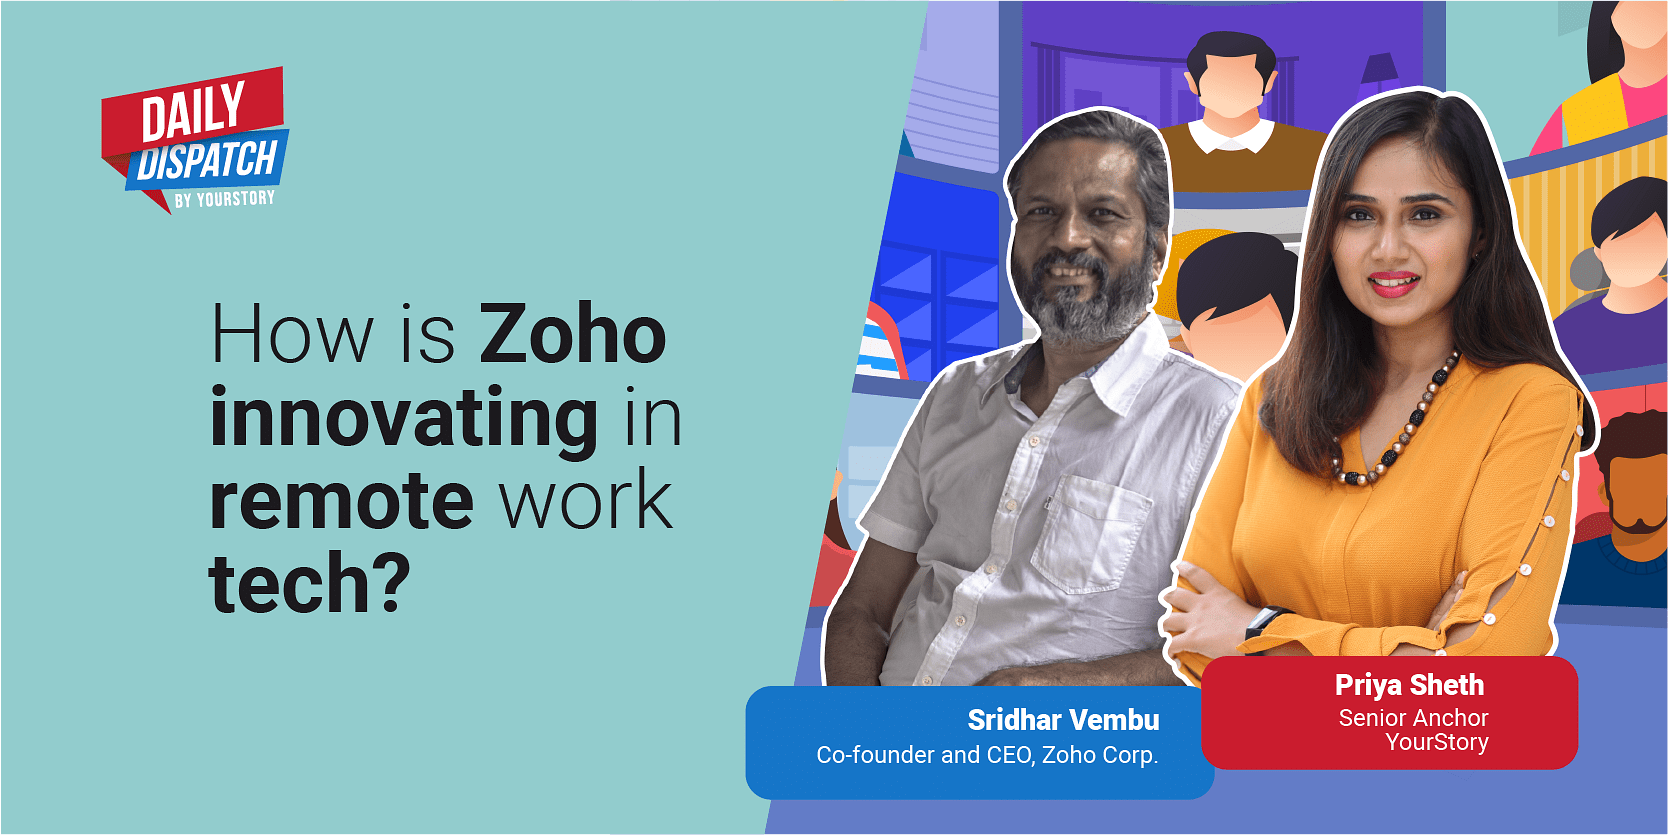 How Sridhar Vembu is steering Zoho Corp to become one of the top technology players in the world